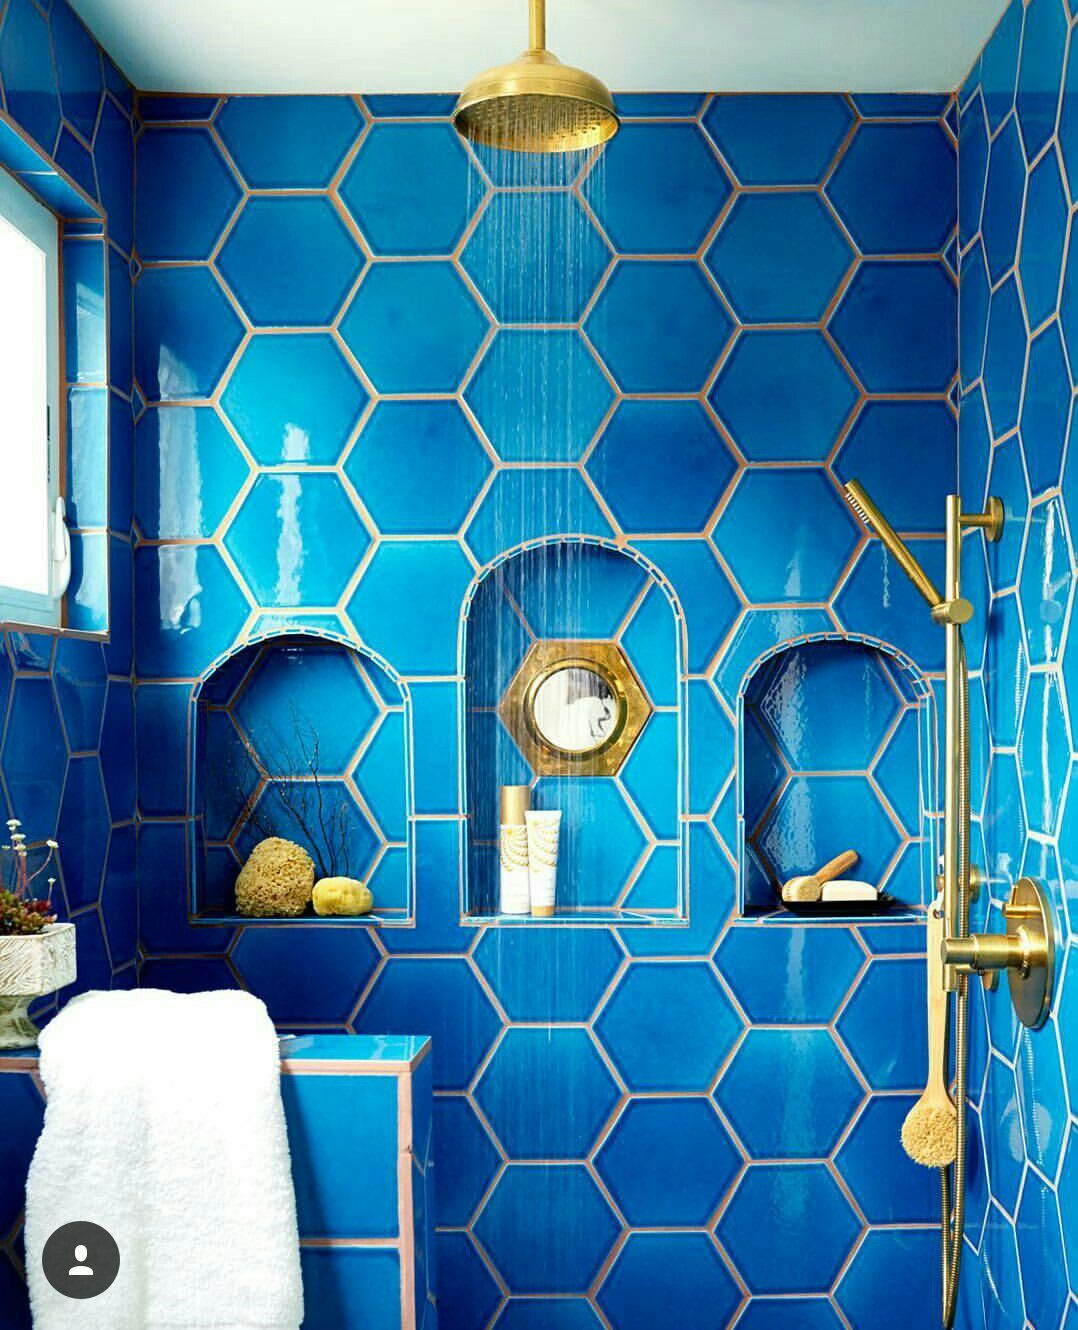 honeycomb or fish scale tiles, large overhead shower head, recessed ...